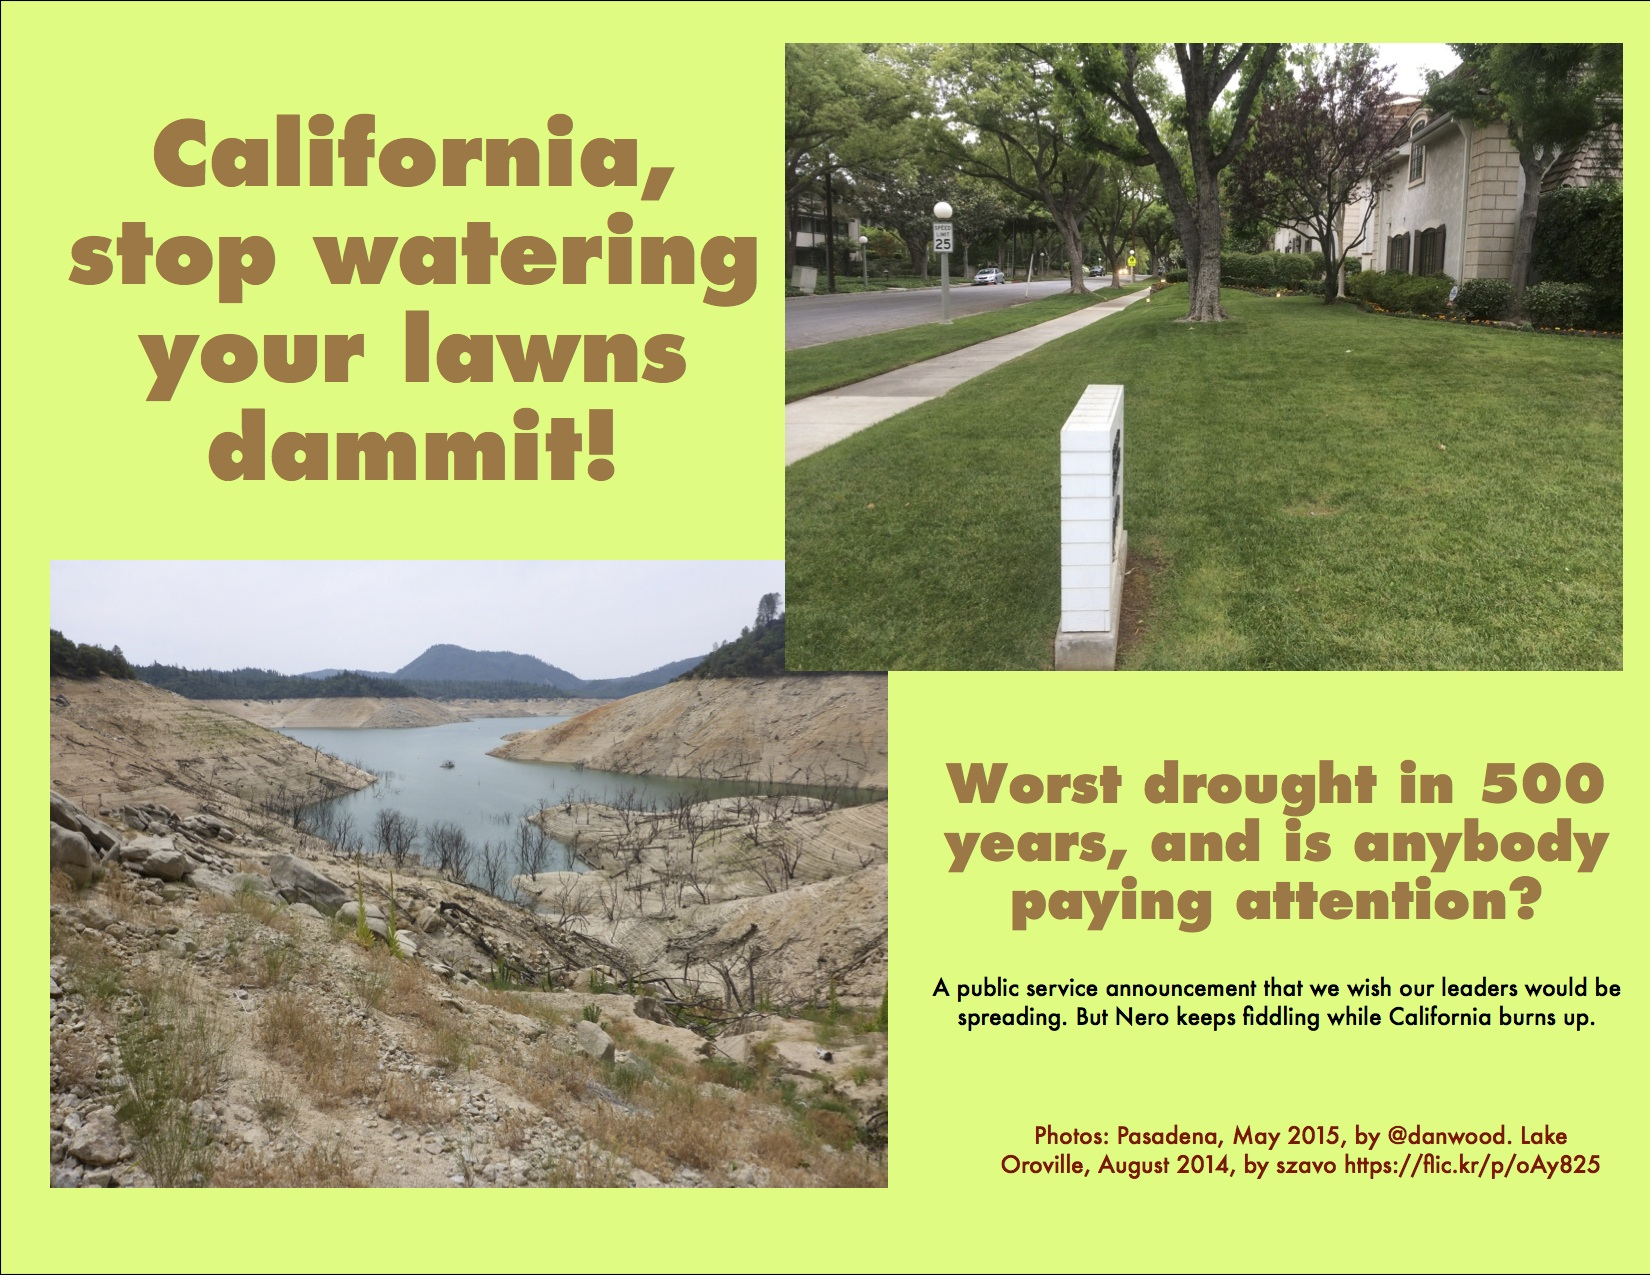 California S Water Waste Is Awful But My Idea To Stop It